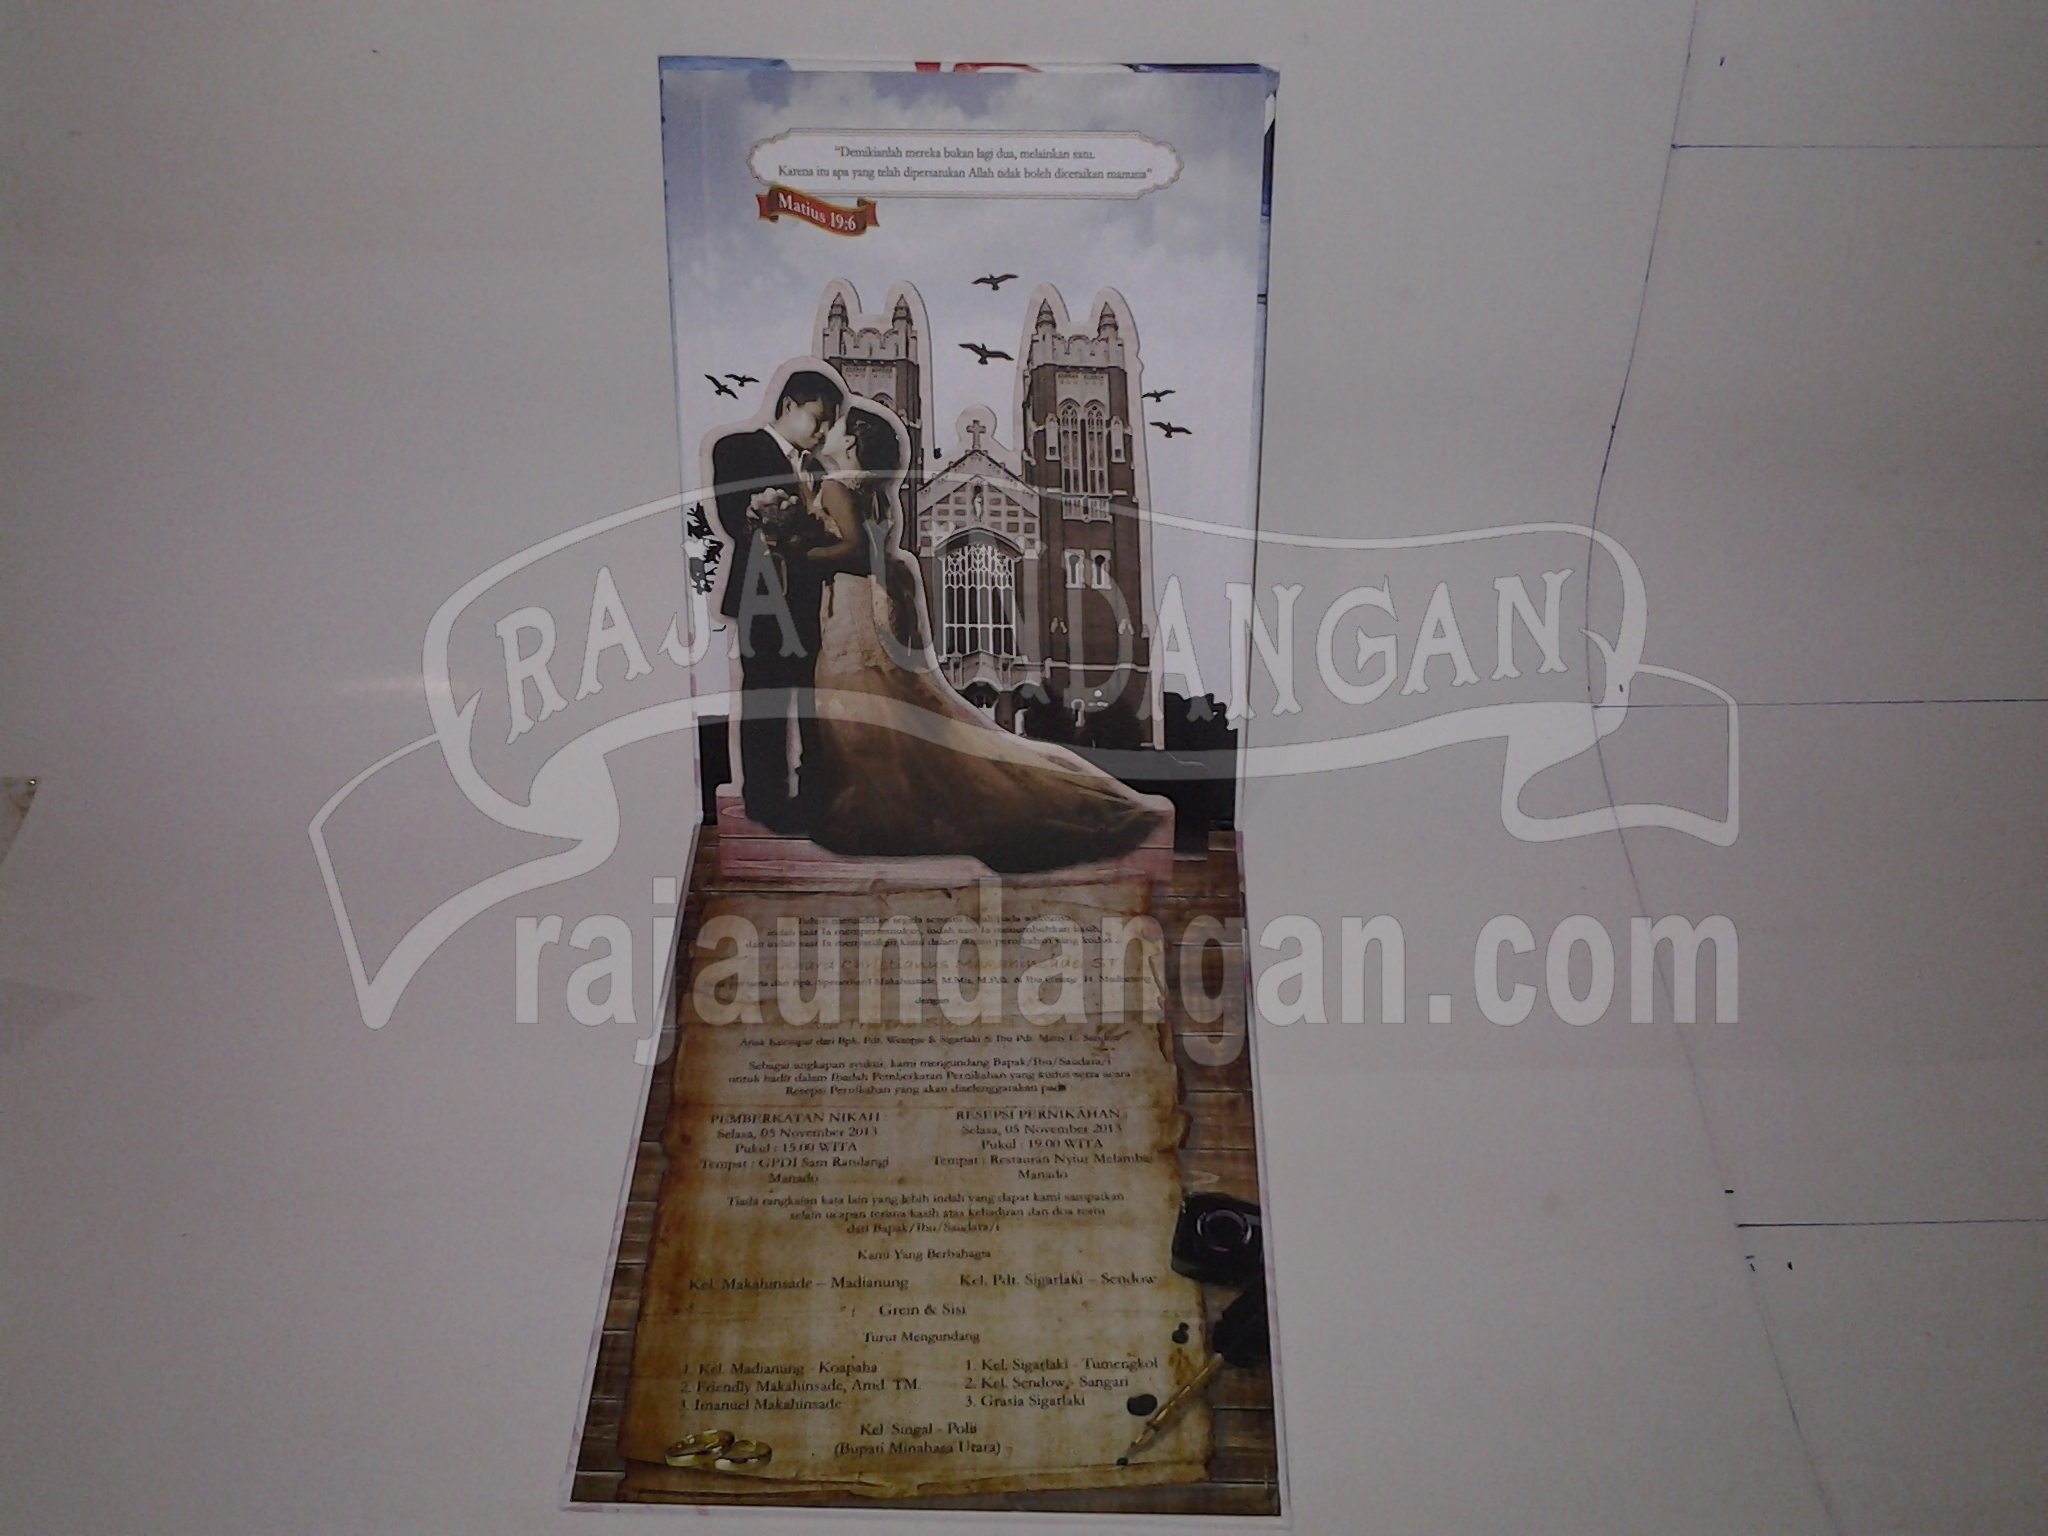 Undangan Pernikahan Hardcover Pop Up Grein dan Sisi 3 - Membuat Wedding Invitations Unik dan Murah di Kedungdoro